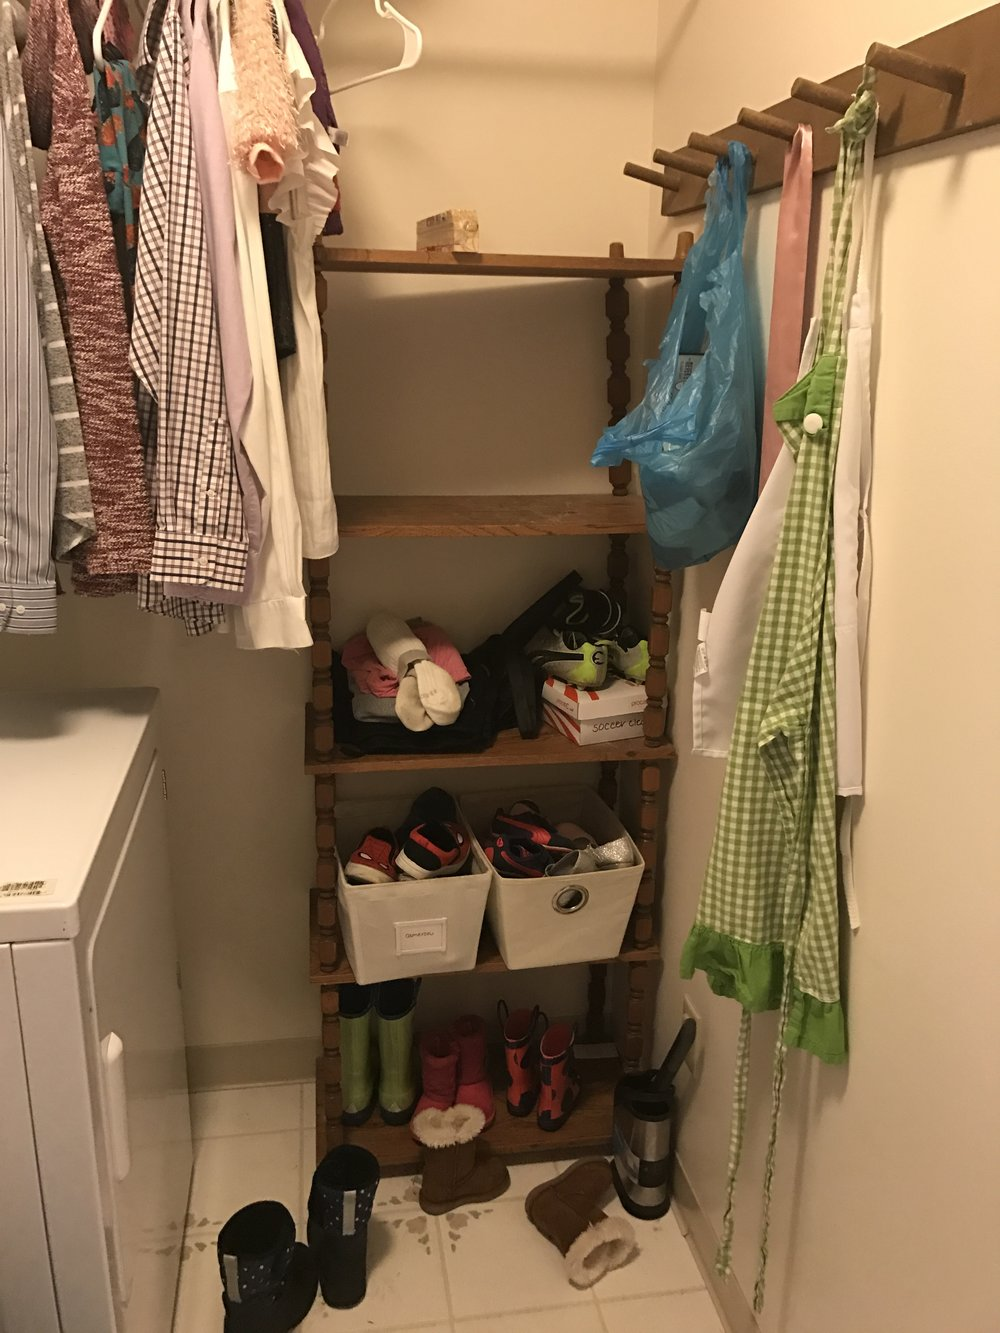 Old laundry room. In need of help.